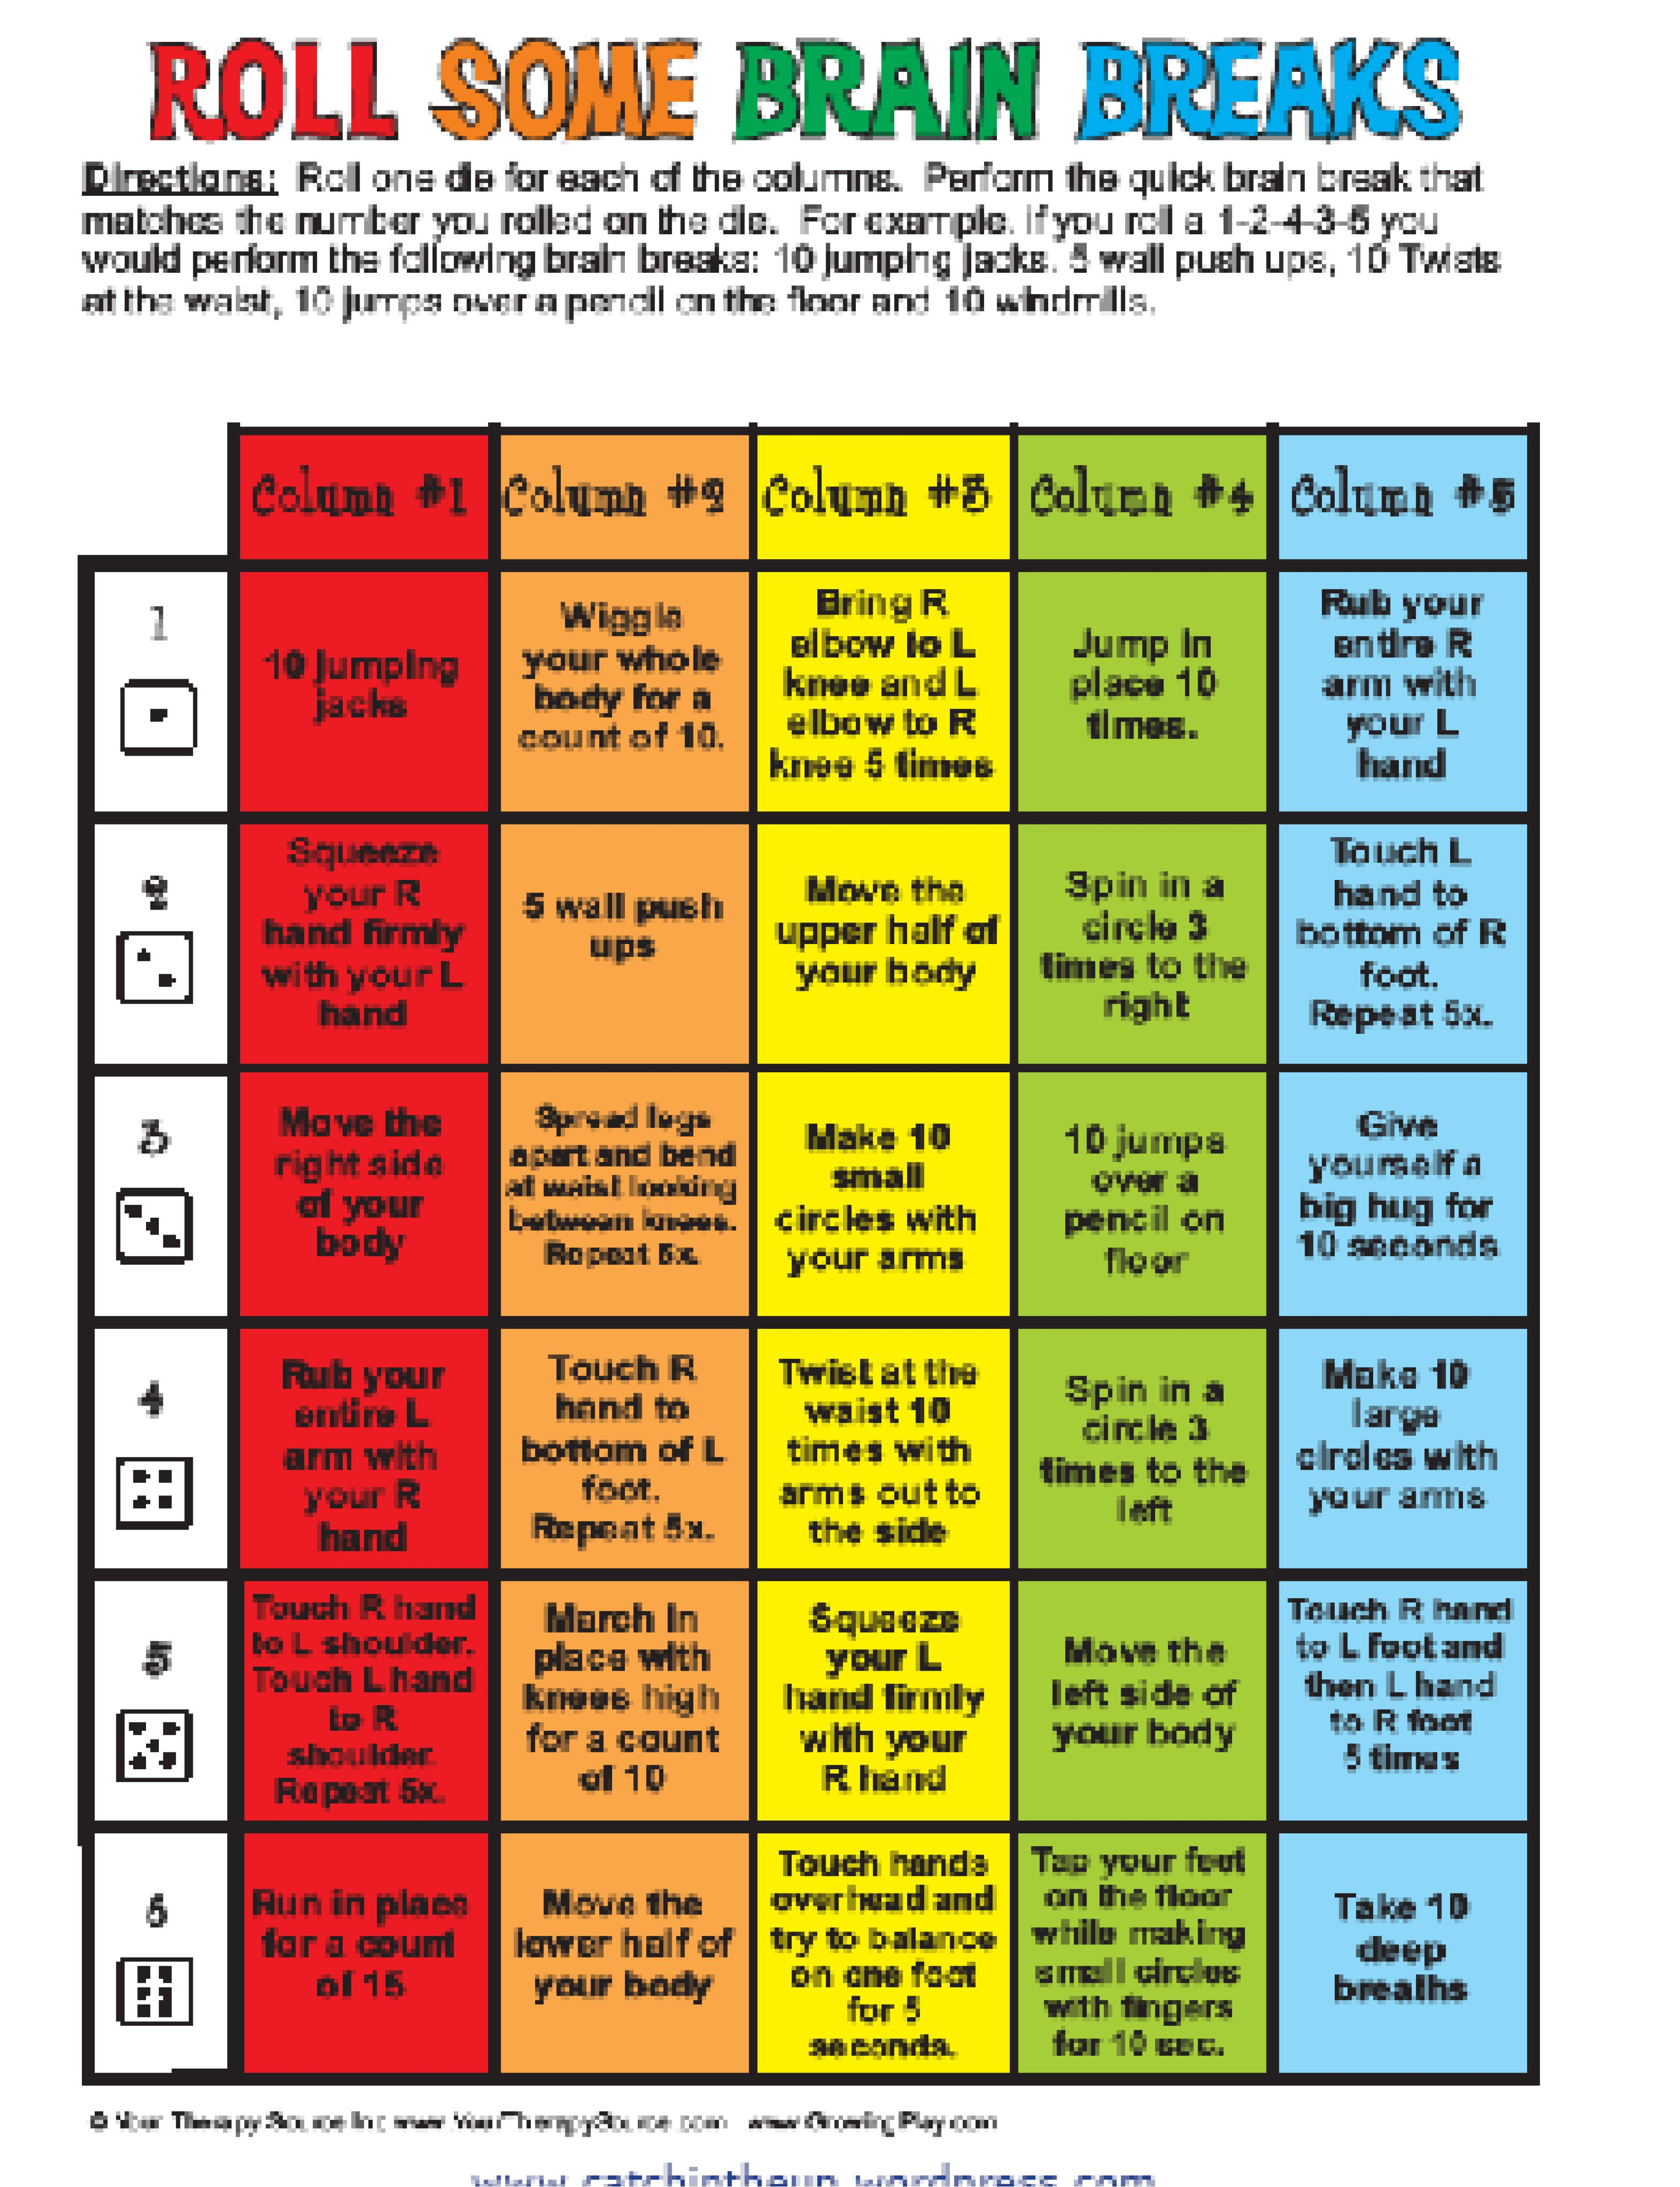 Brain Breaks Handout With Images